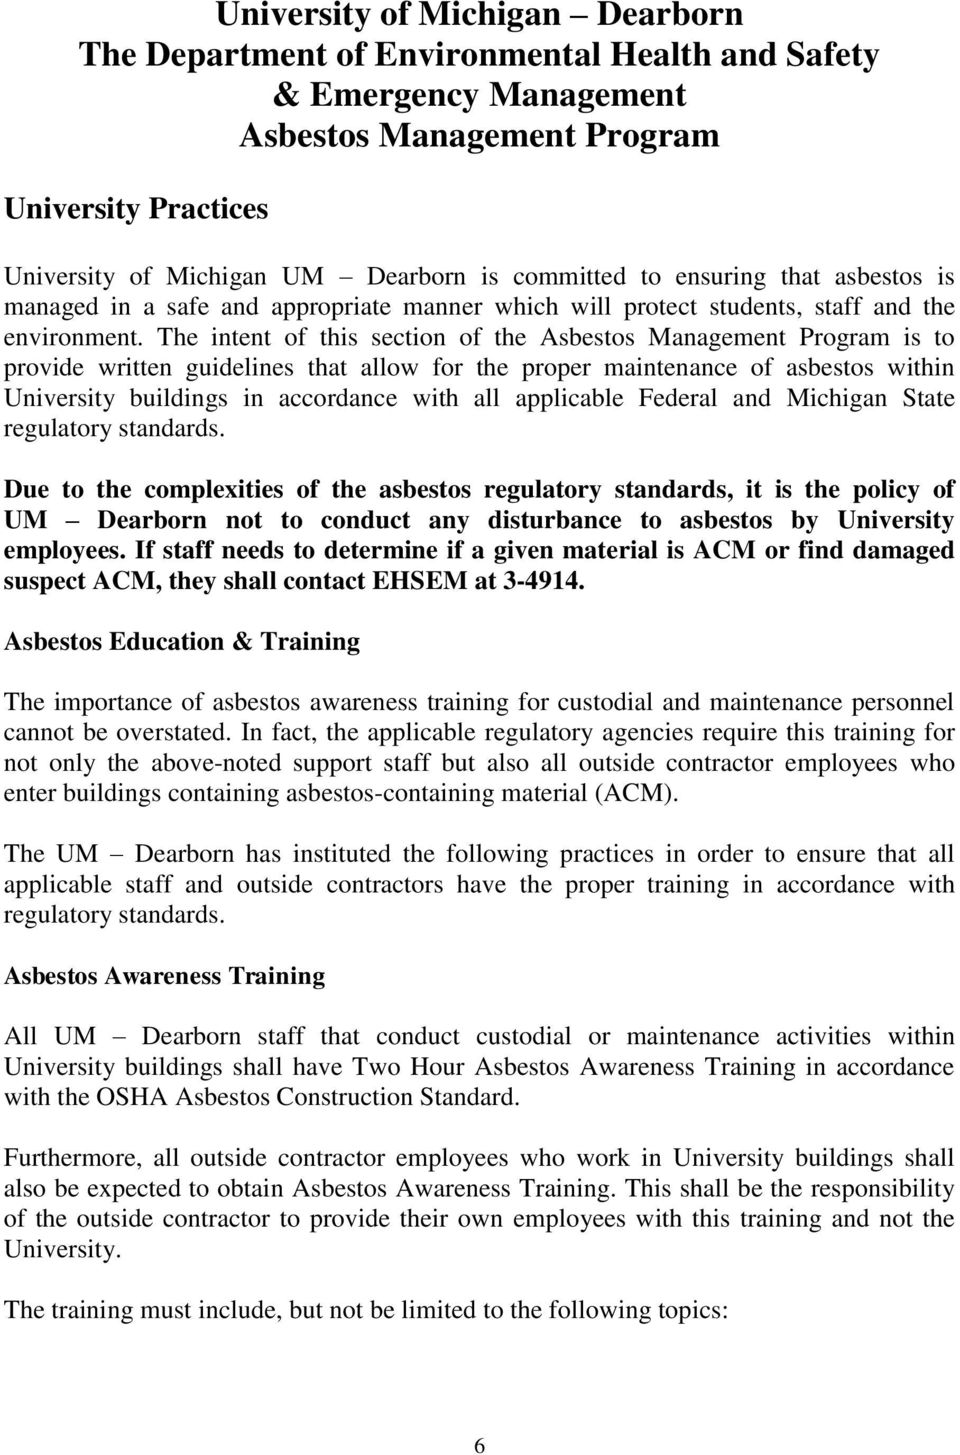 The intent of this section of the Asbestos Management Program is to provide written guidelines that allow for the proper maintenance of asbestos within University buildings in accordance with all